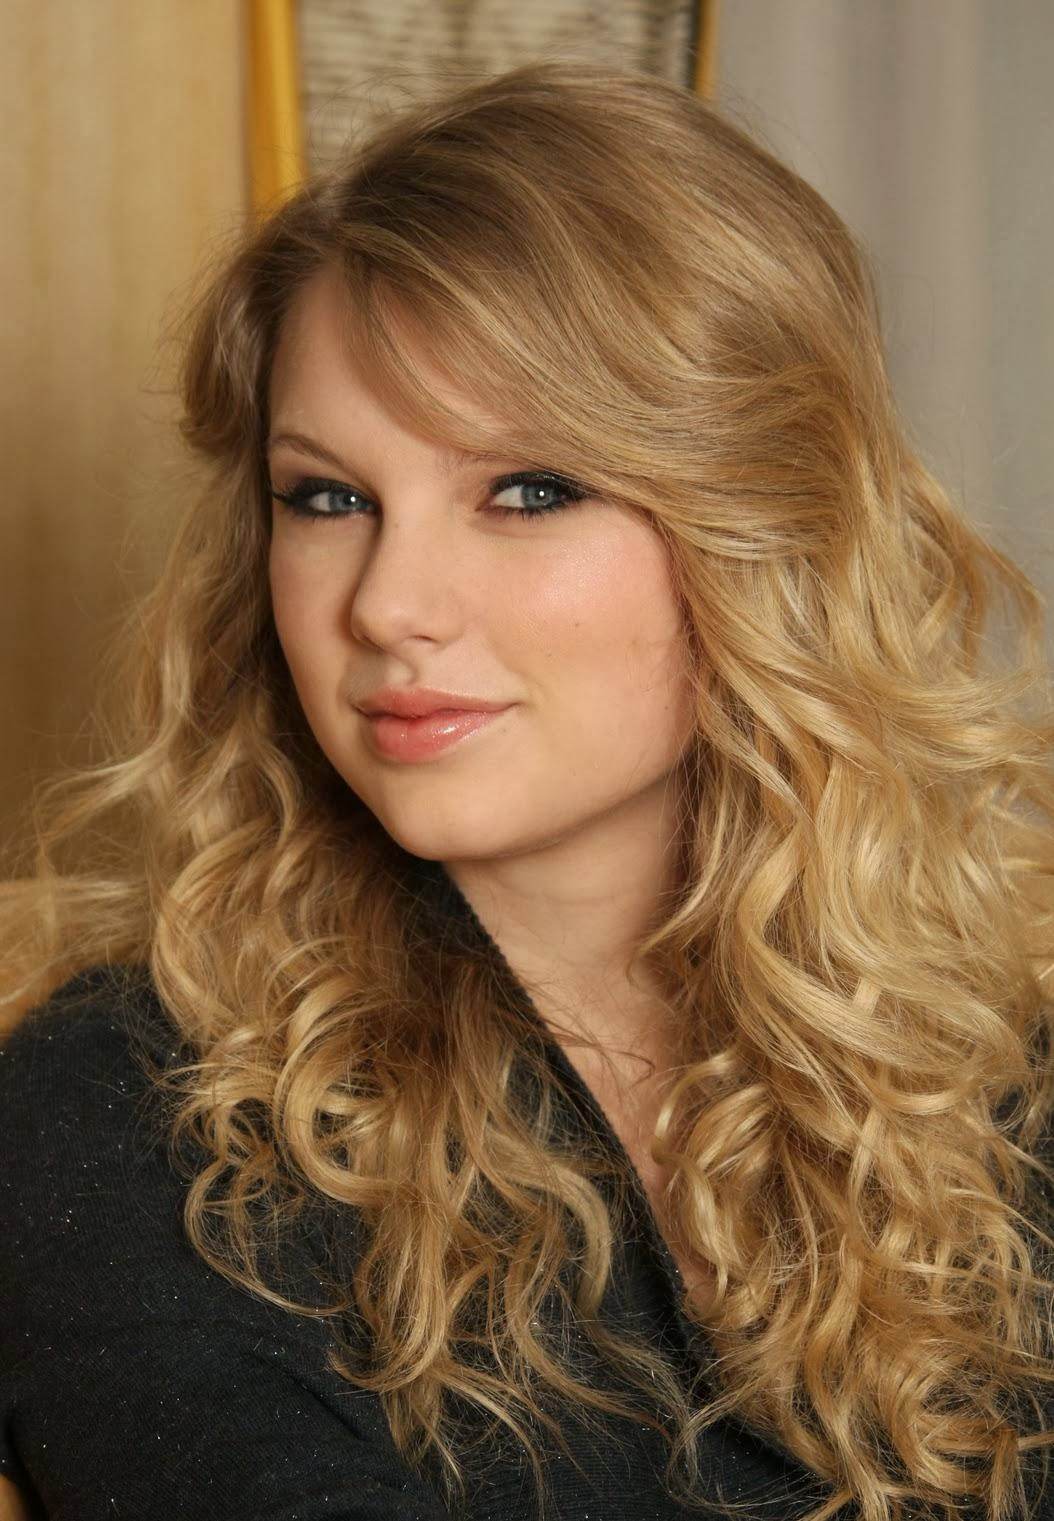 taylor swift hairstyles for long hair 2013 with bangs